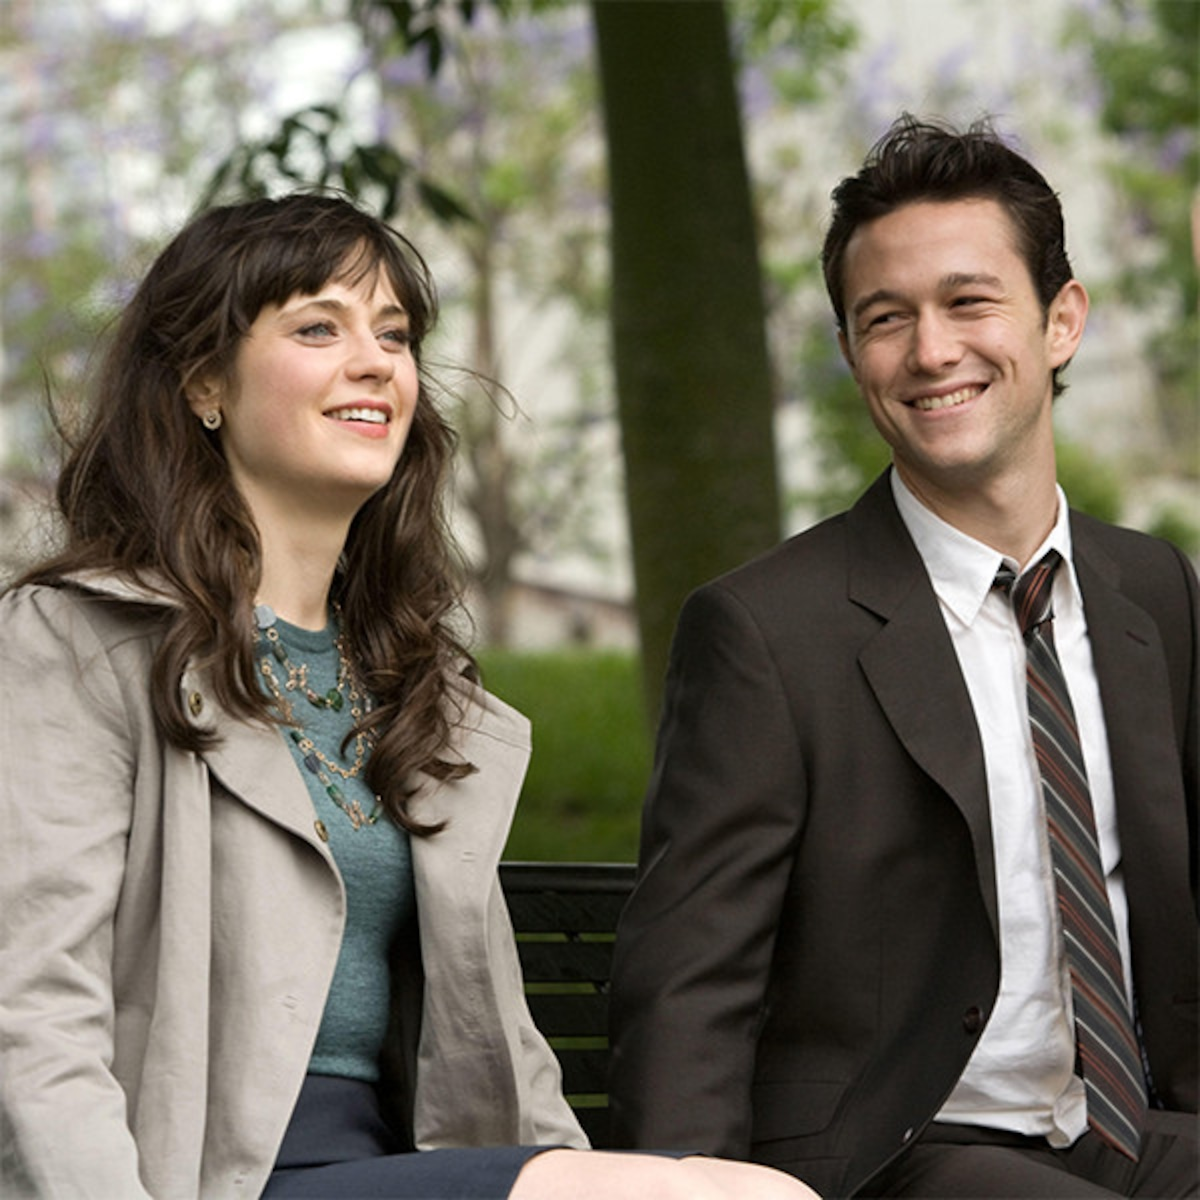 """Movie soundtracks, Also, from 500 Days Of Summer (2009) - """"She's Got You High"""" by Mumm-ra"""